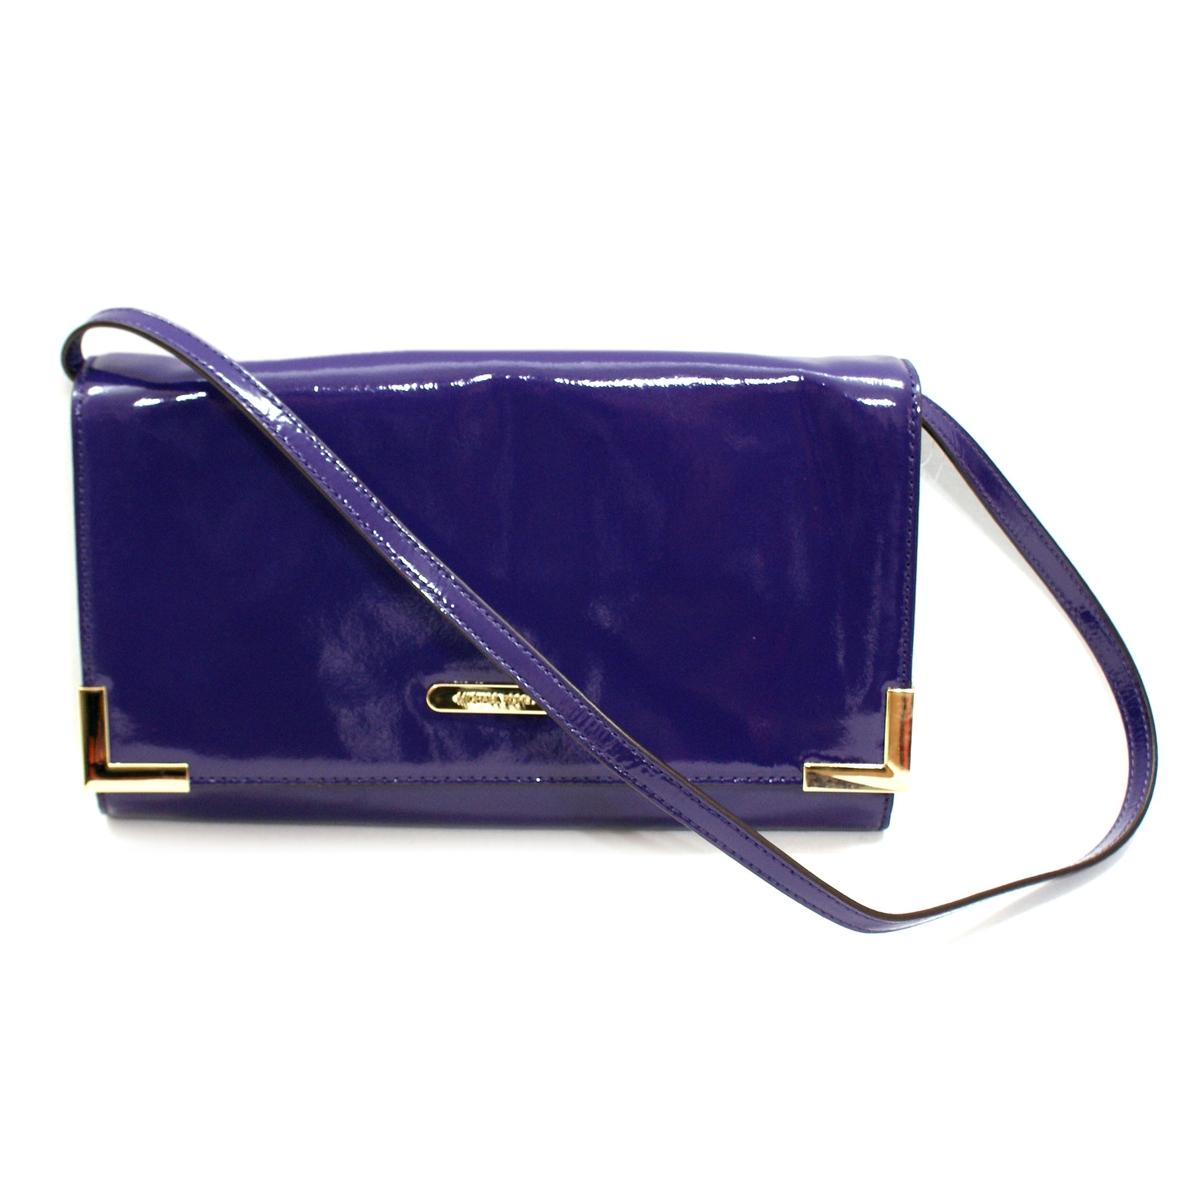 4b8bf237a249 Home · Michael Kors · Beverly Genuine Leather Oversized Clutch/ Shoulder Bag  Iris. CLICK THUMBNAIL TO ZOOM. Found ...